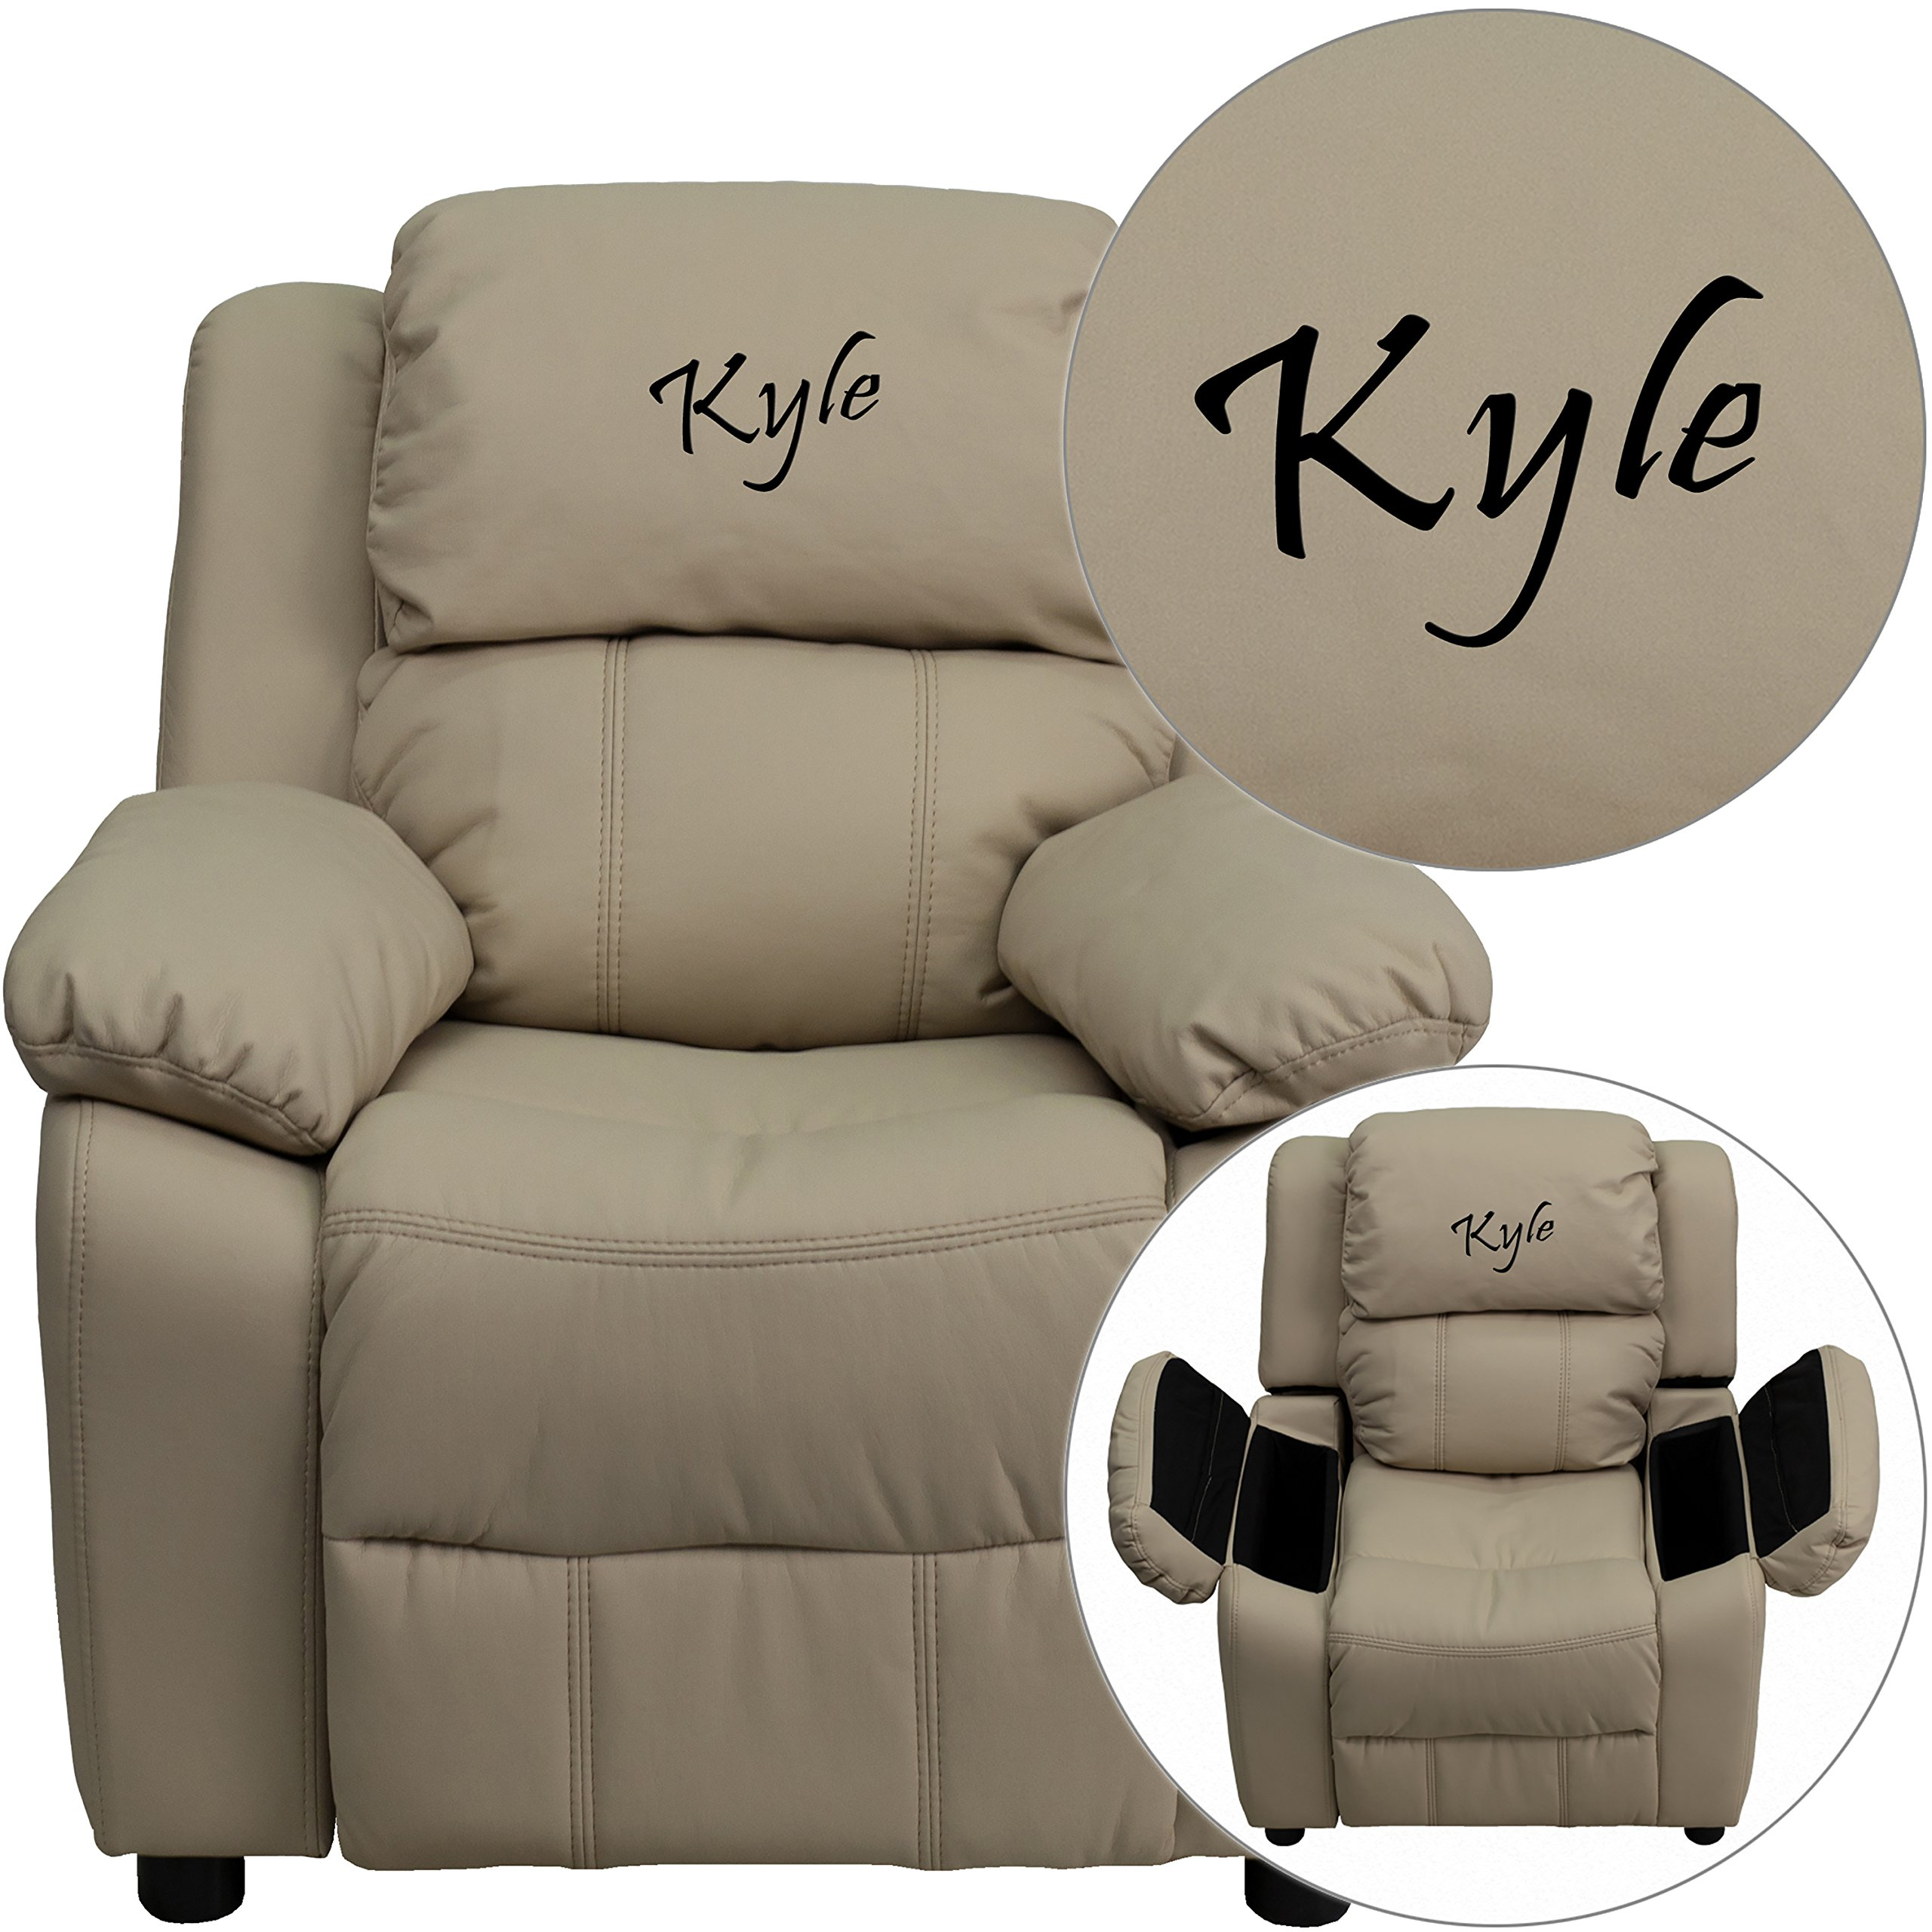 Winston Direct Kids' Series Personalized Deluxe Padded Beige Vinyl Recliner with Storage Arms